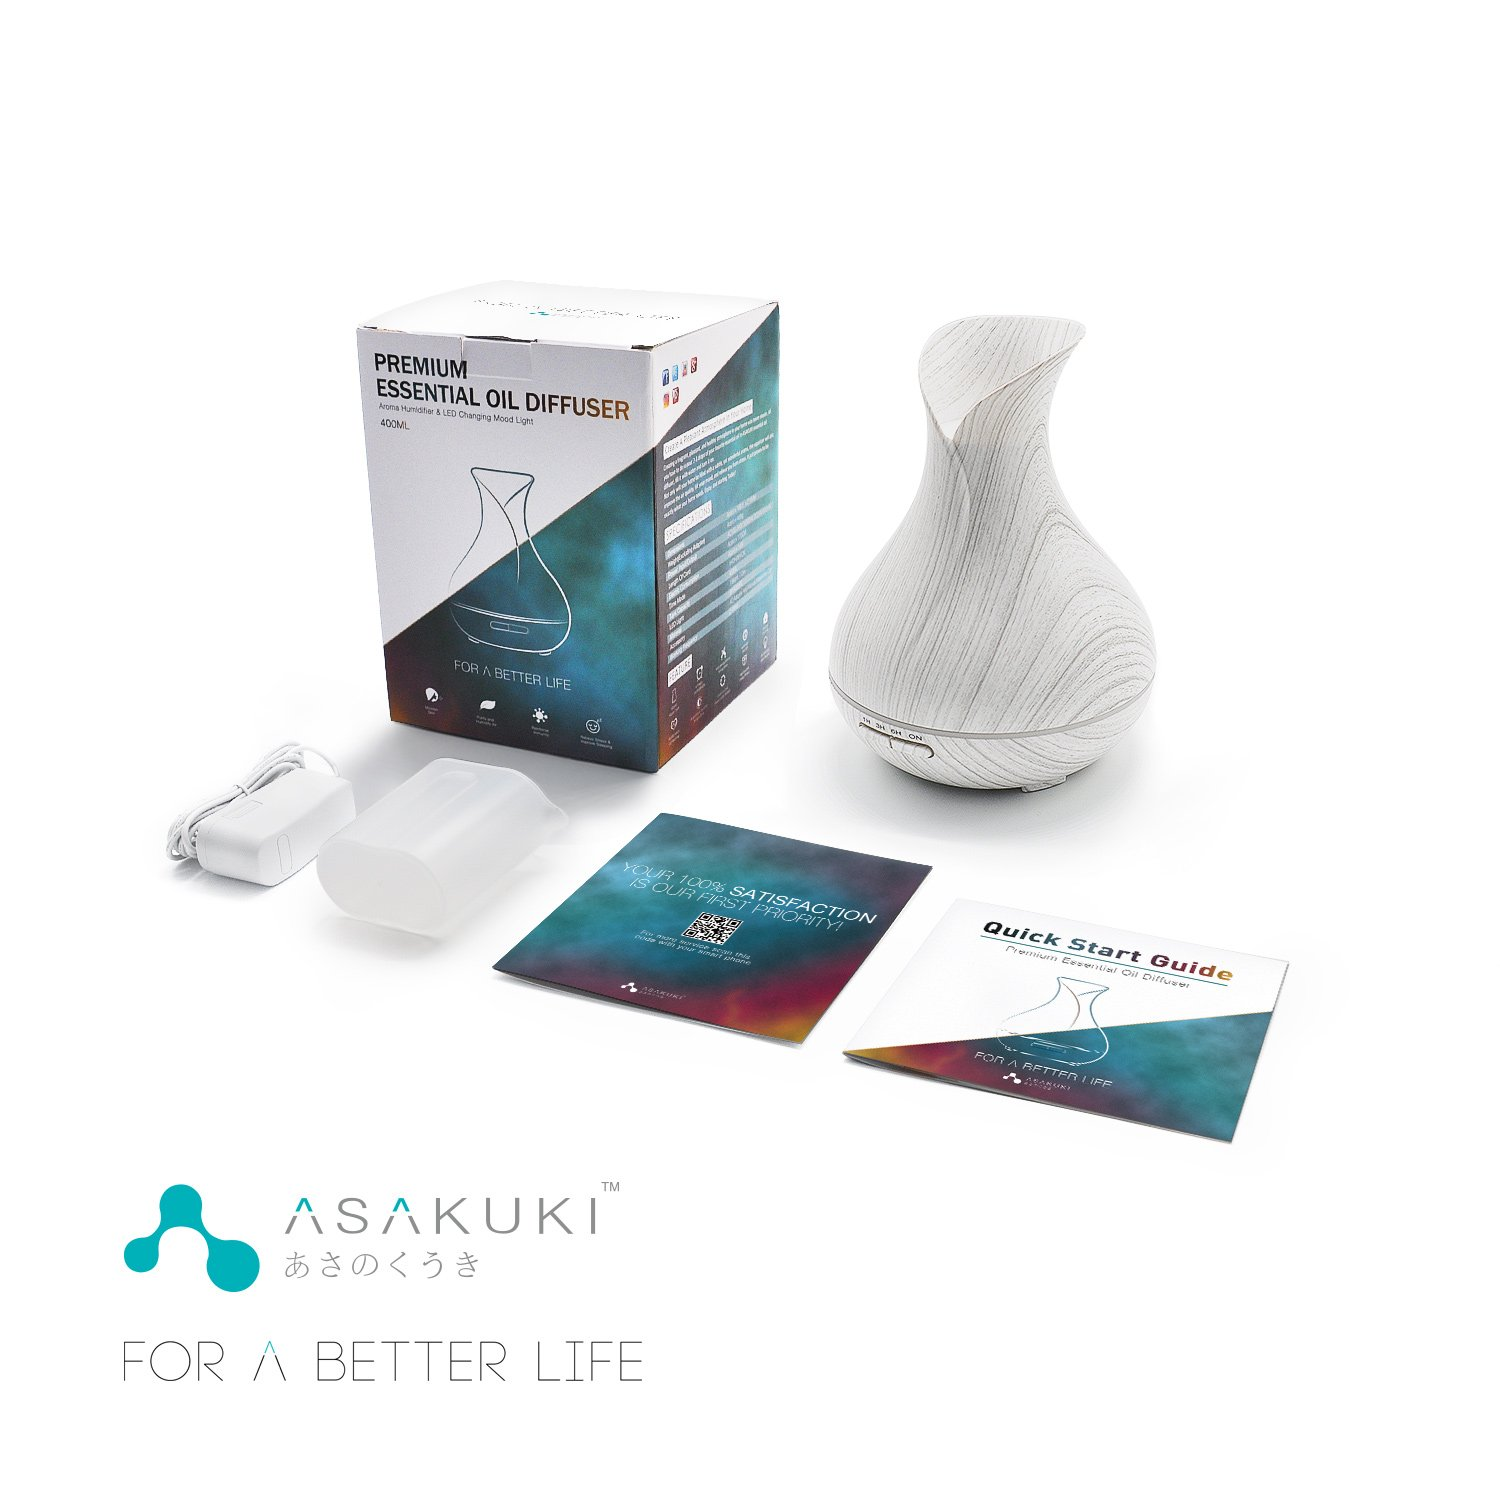 ASAKUKI 400ML Premium, Essential Oil Diffuser, Quiet 5-in-1 Humidifier, Natural Home Fragrance Diffuser with 7 LED Color Changing Light and Easy to Clean by ASAKUKI (Image #7)